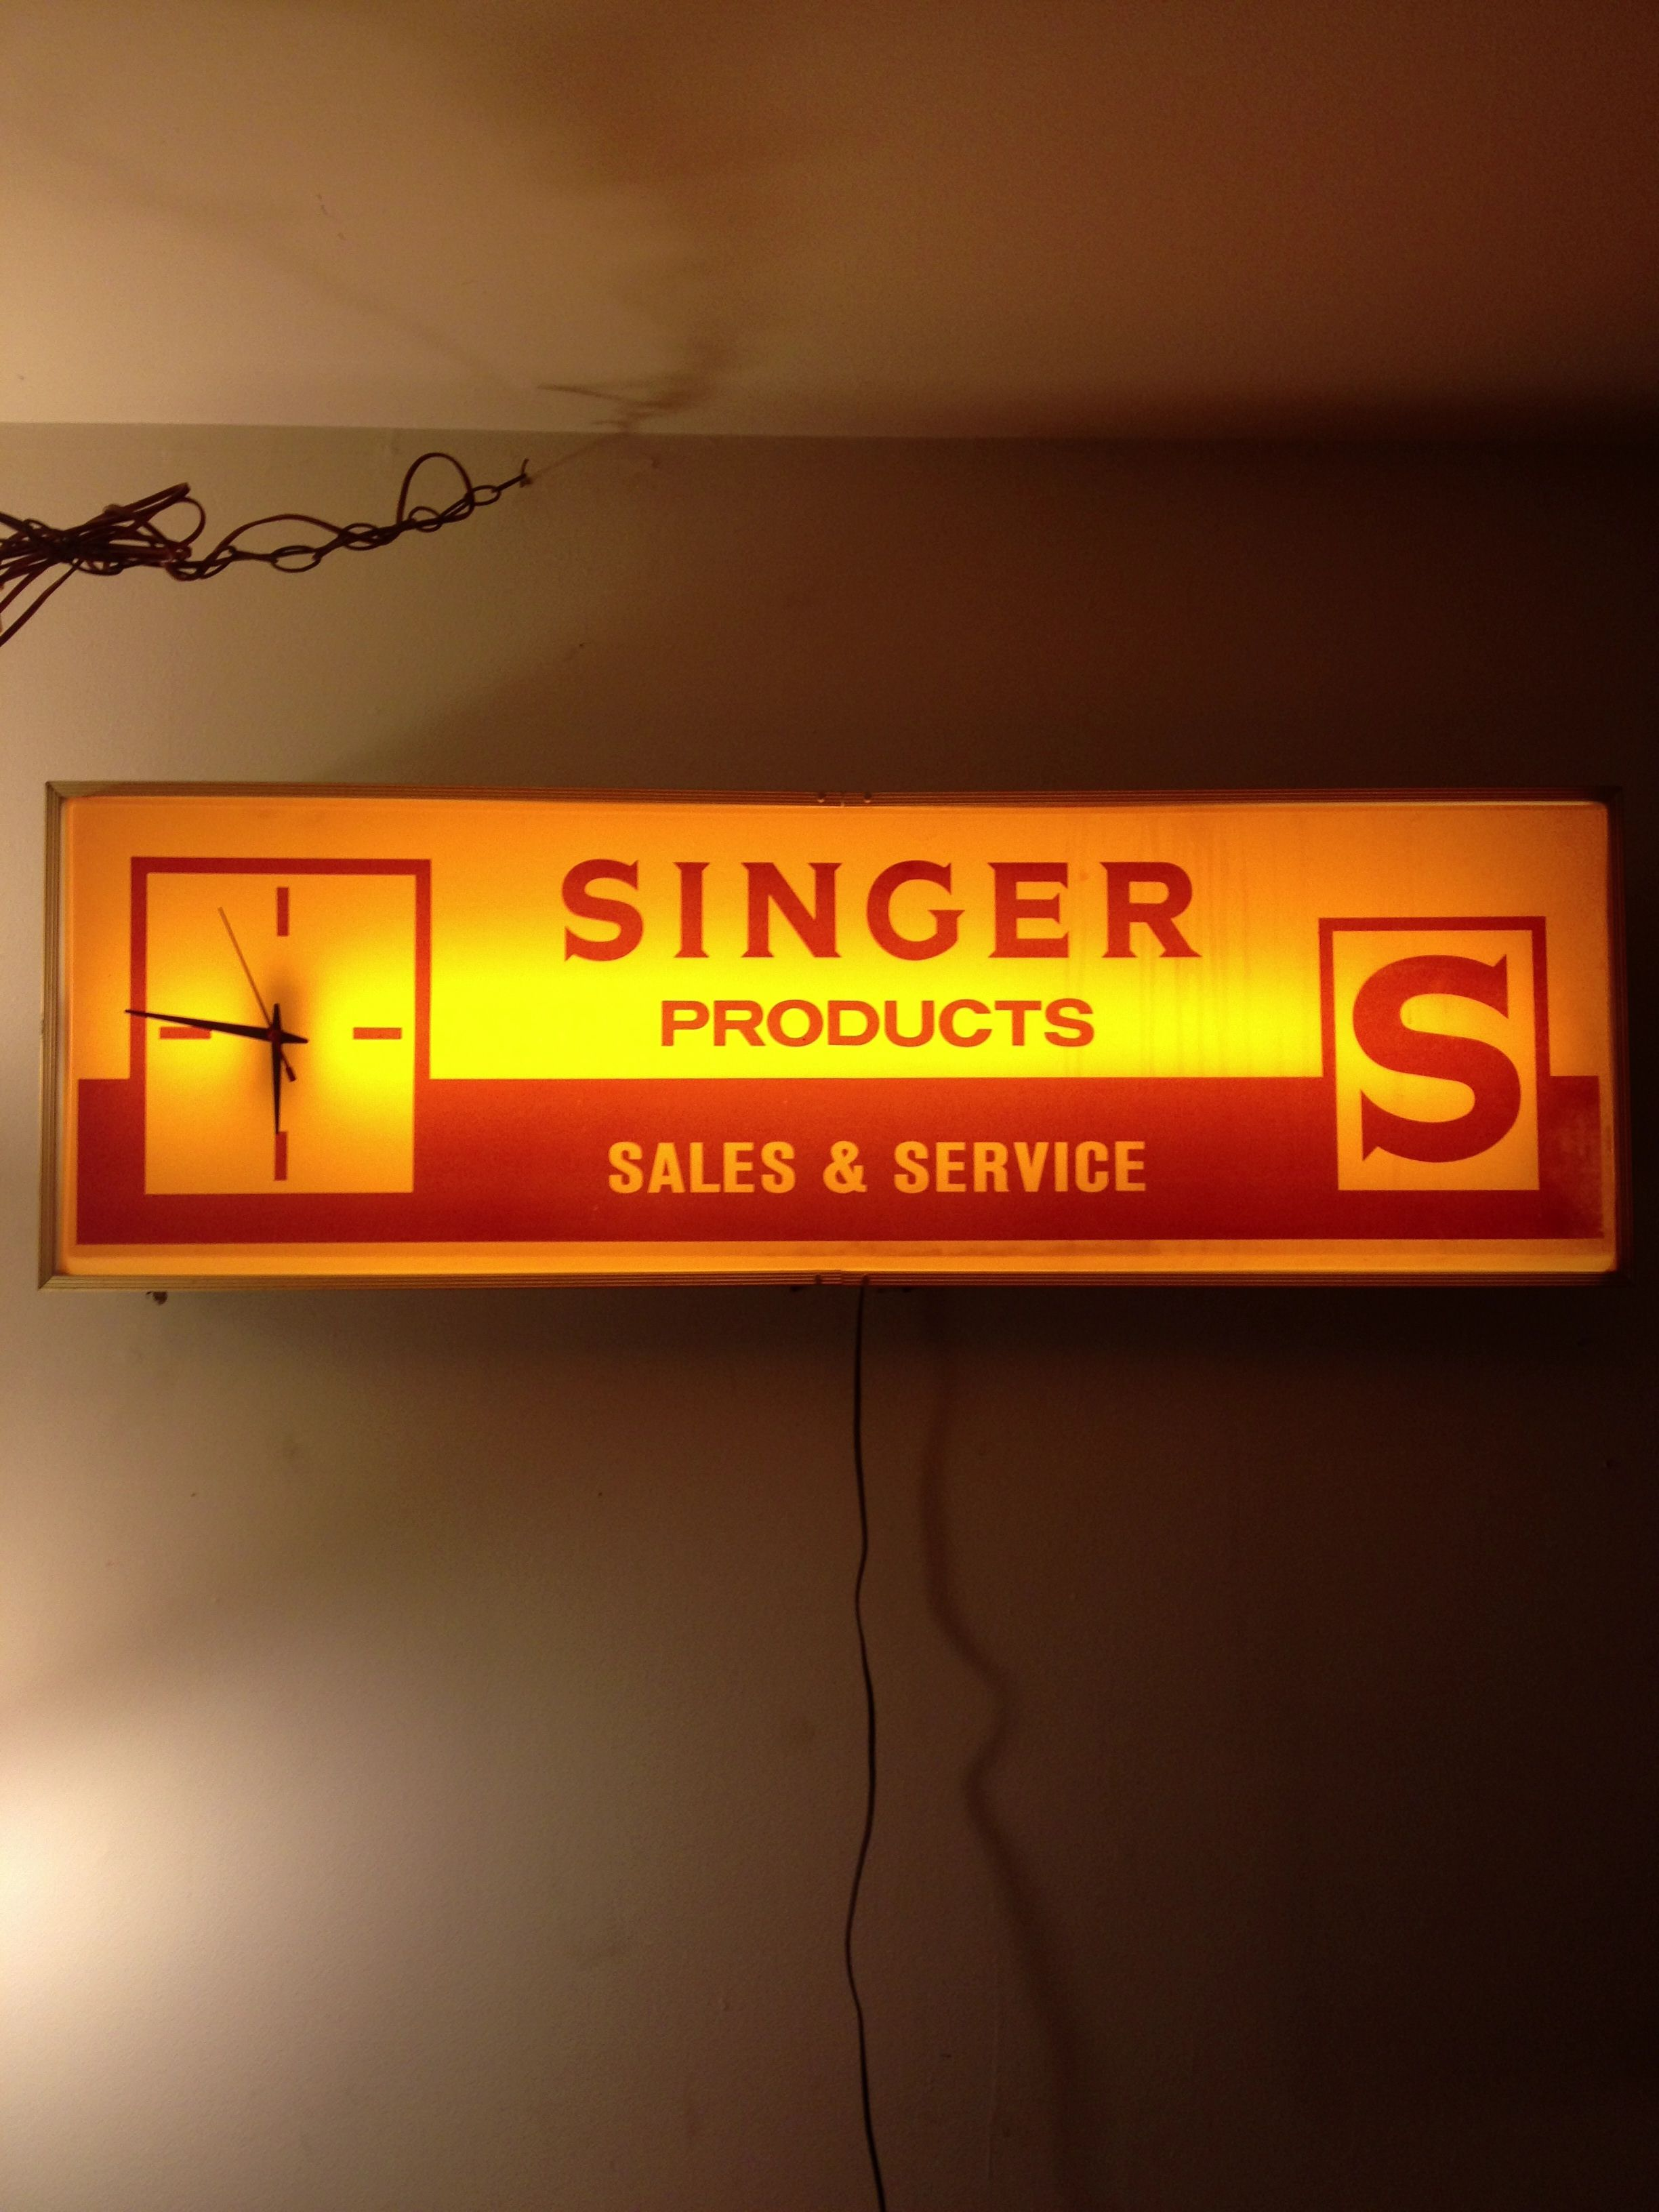 Singer advertising sign for above my sewing table.